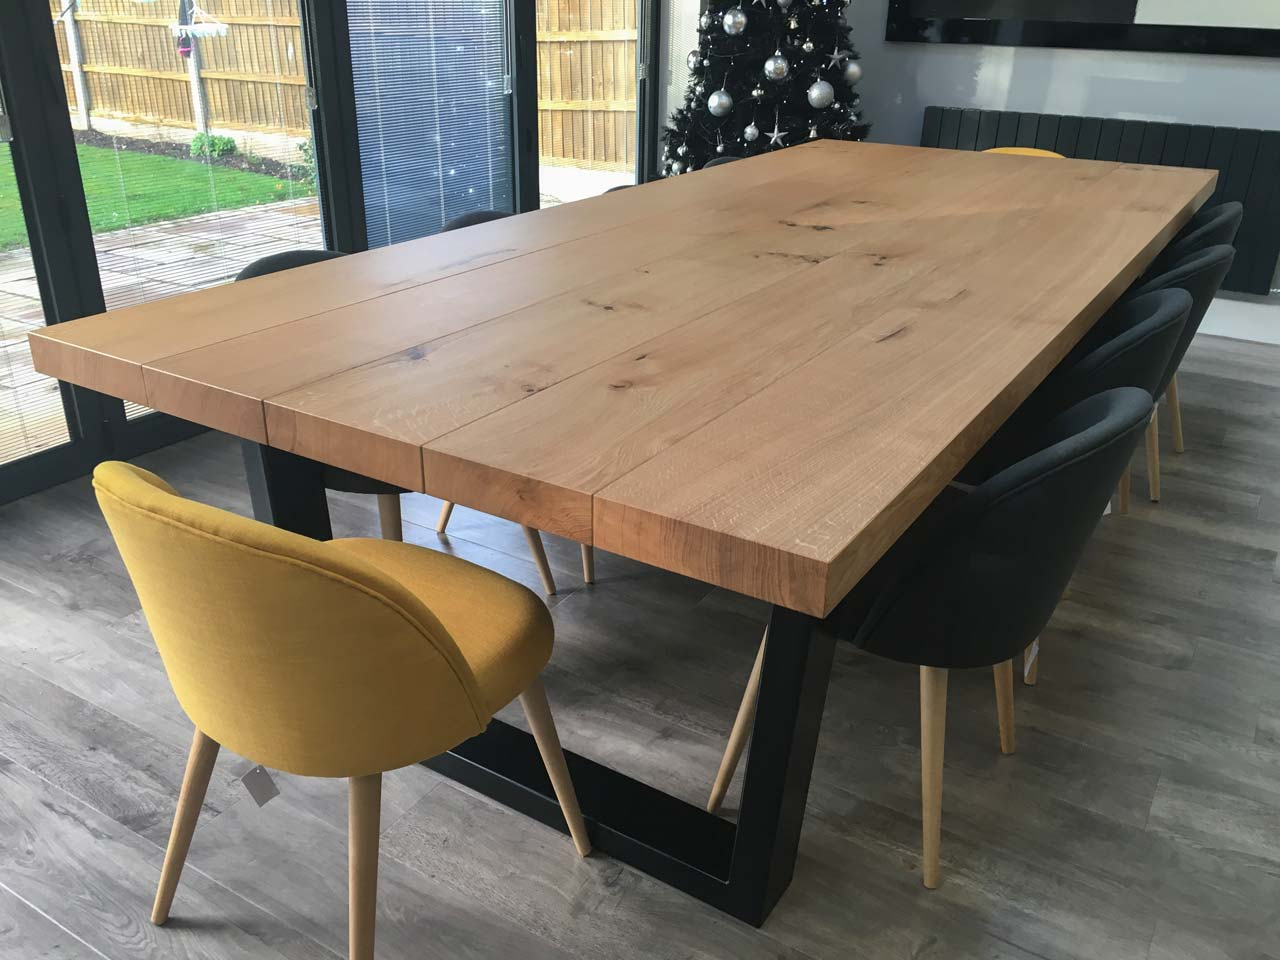 10-seater-dining-table-project-728-abacus-tables-pic1